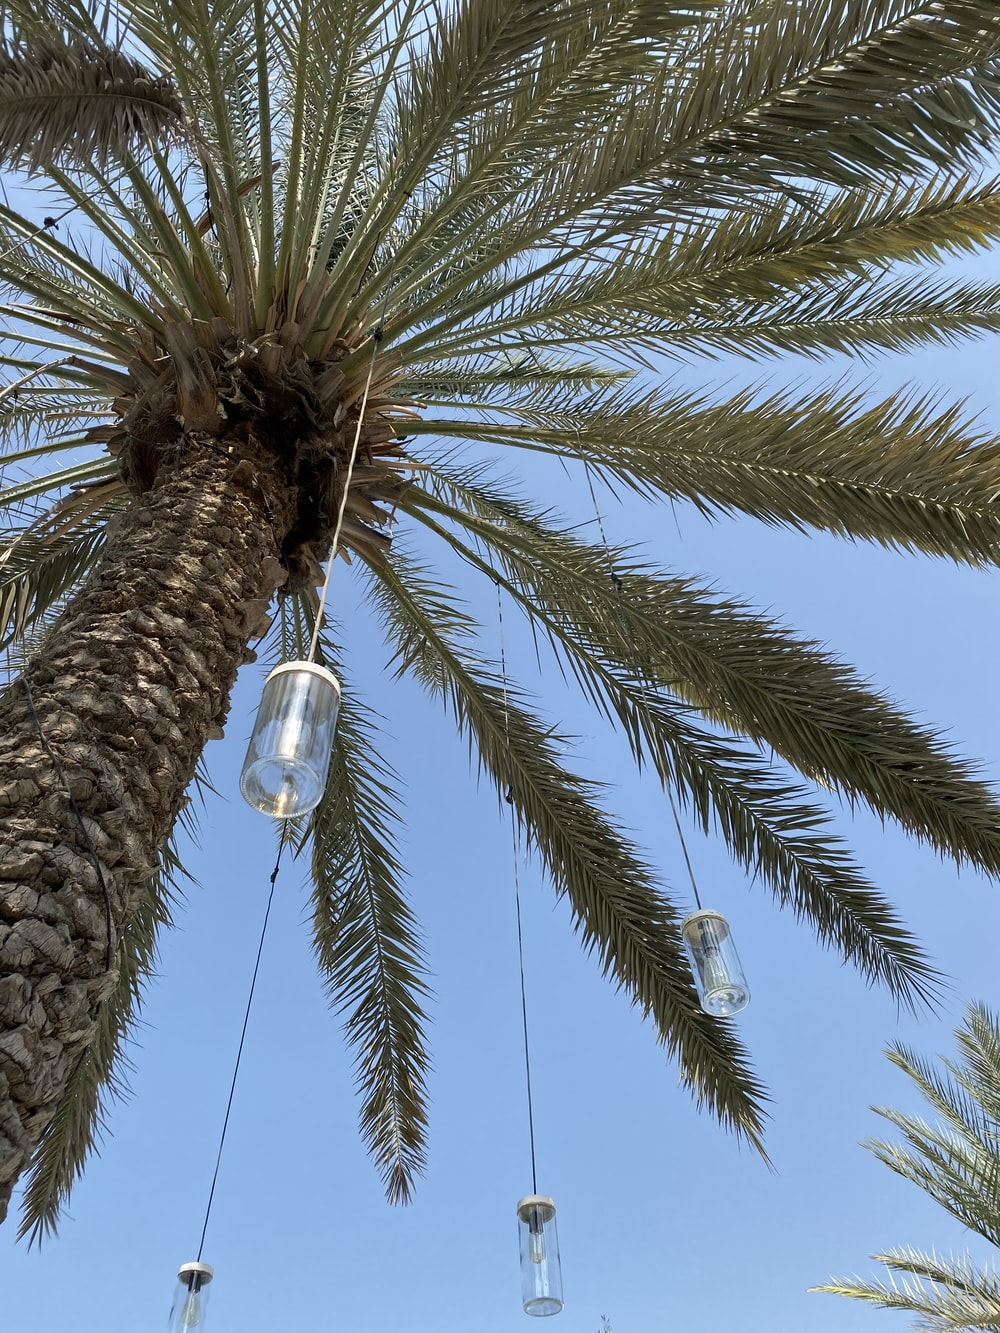 low angle photography of palm tree during daytime